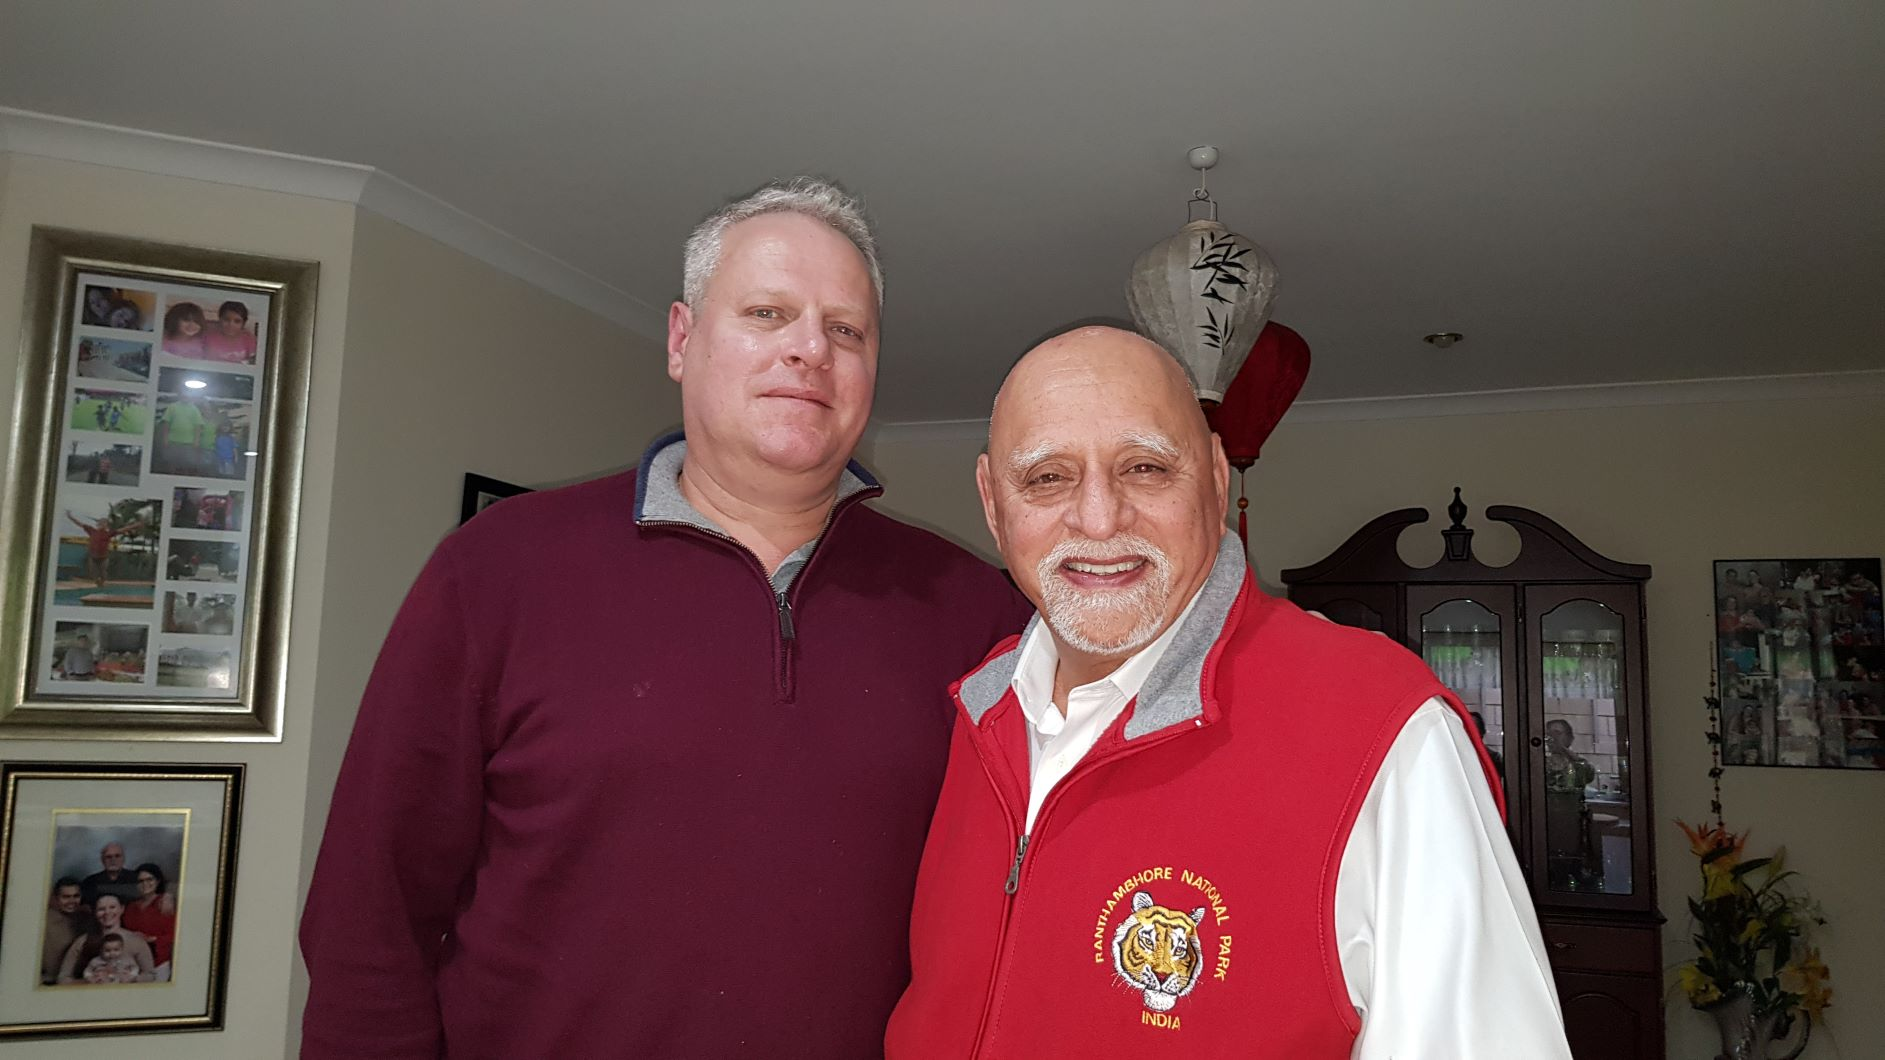 Col Harpal Ahluwalia with David Tomlinson, the great great grandson of Charles Des Voeux of 36th Sikhs